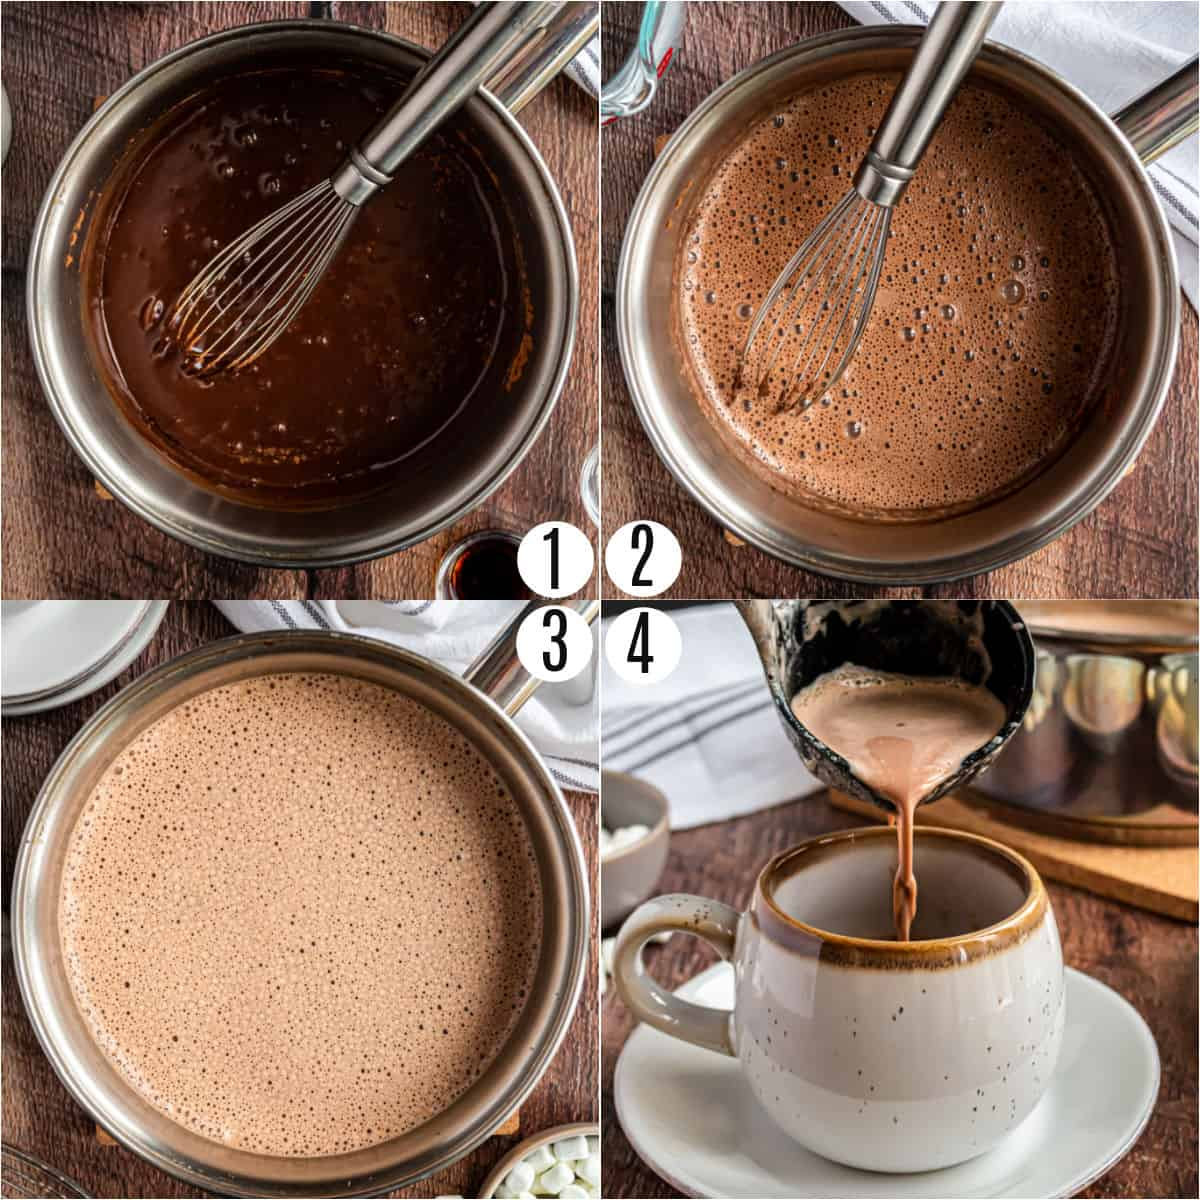 Step by step photos showing how to make homemade hot chocolate.